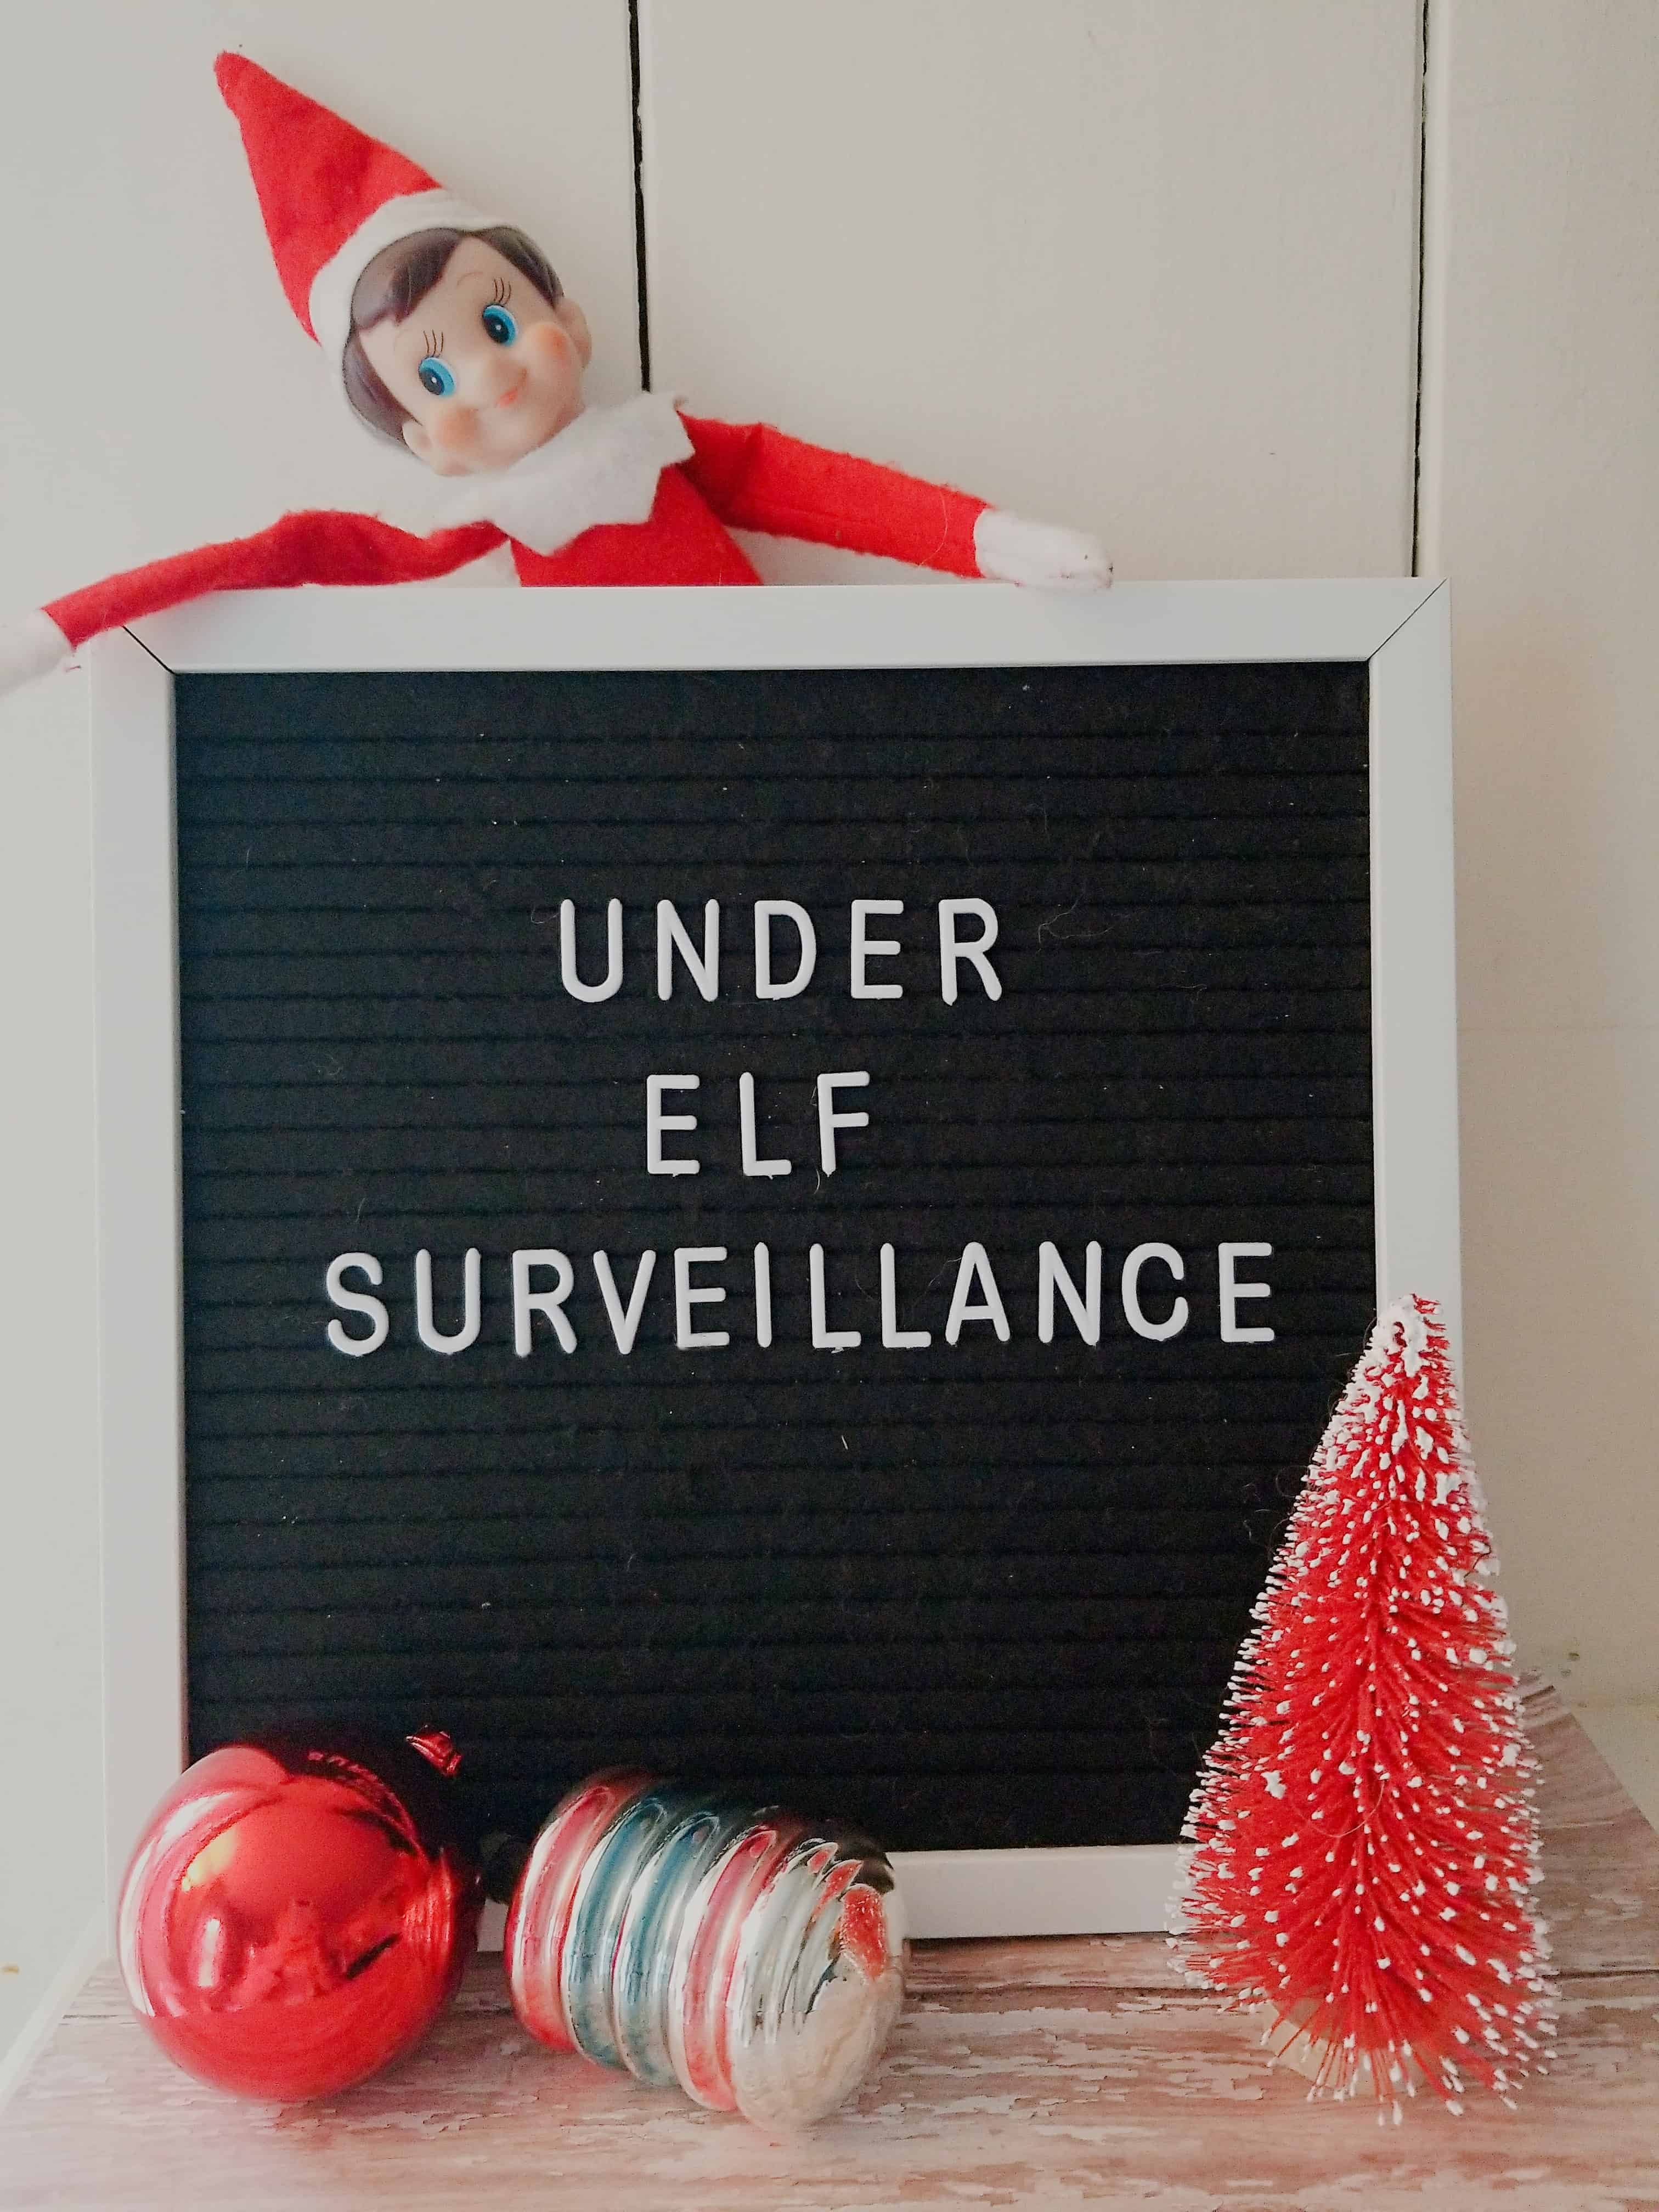 Here are some Elf on the shelf ideas your kids will love!